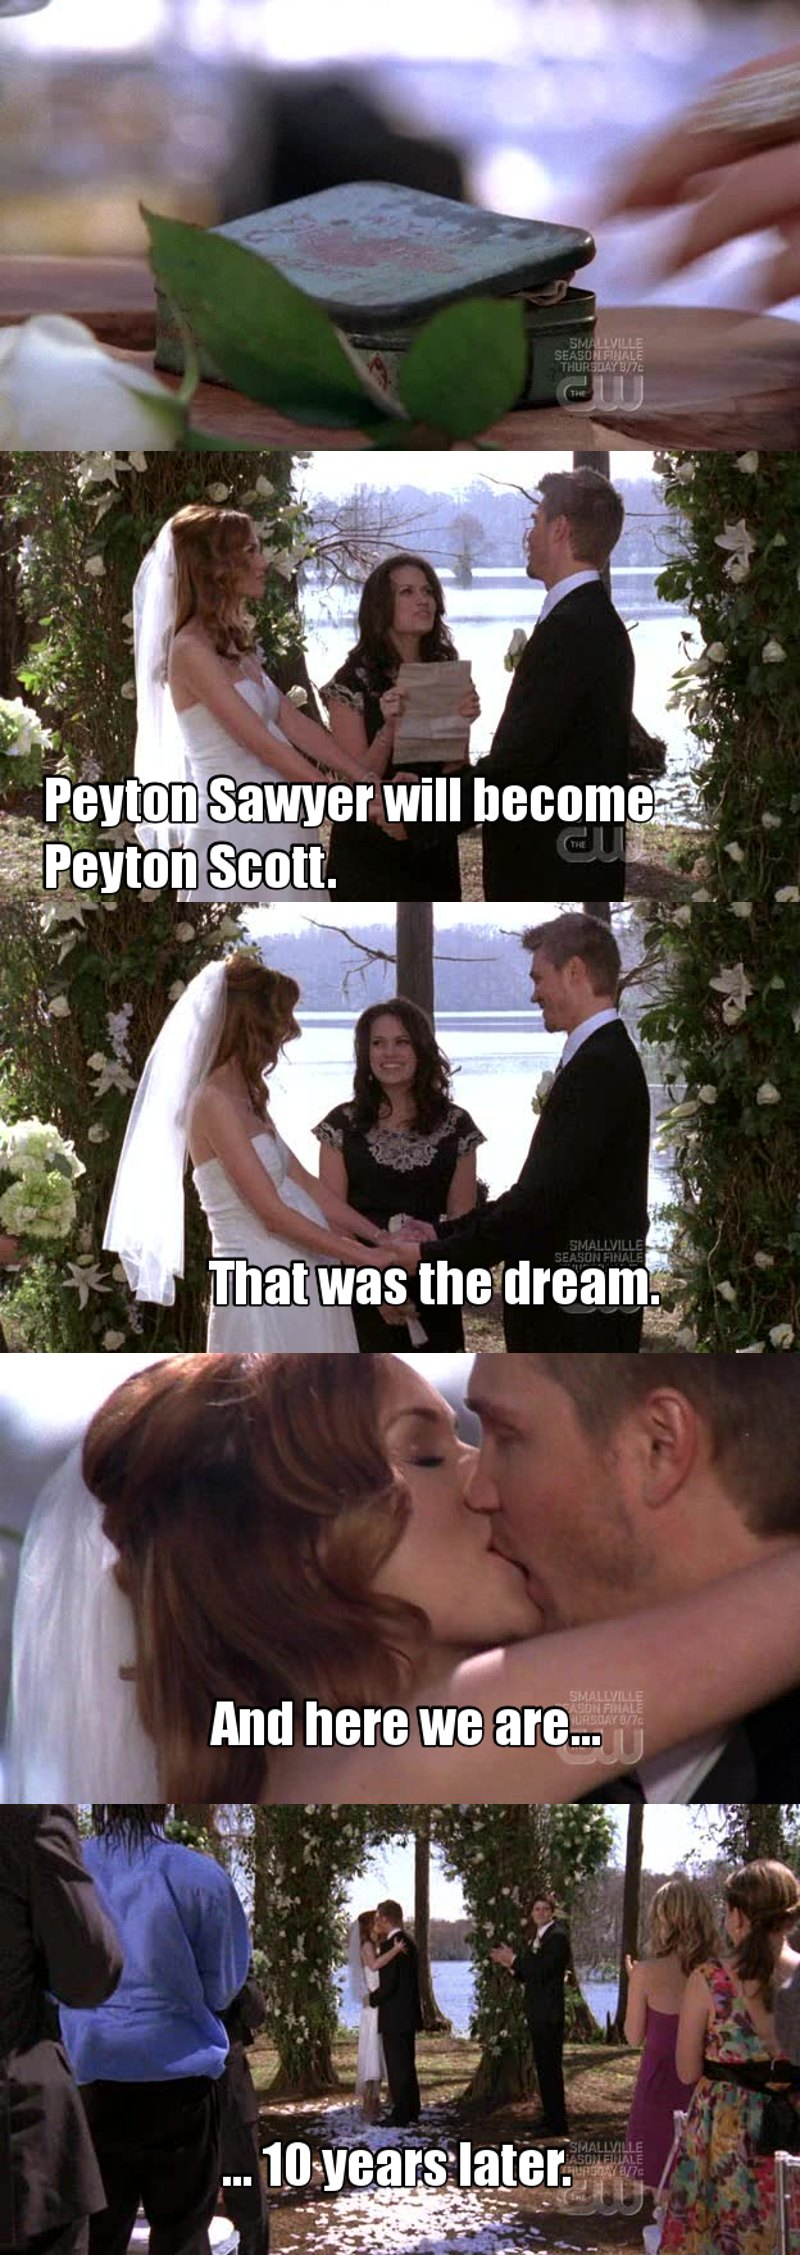 Leyton were always meant to be, since their first look, and it was a beautiful wedding, and an amazing episode 💘